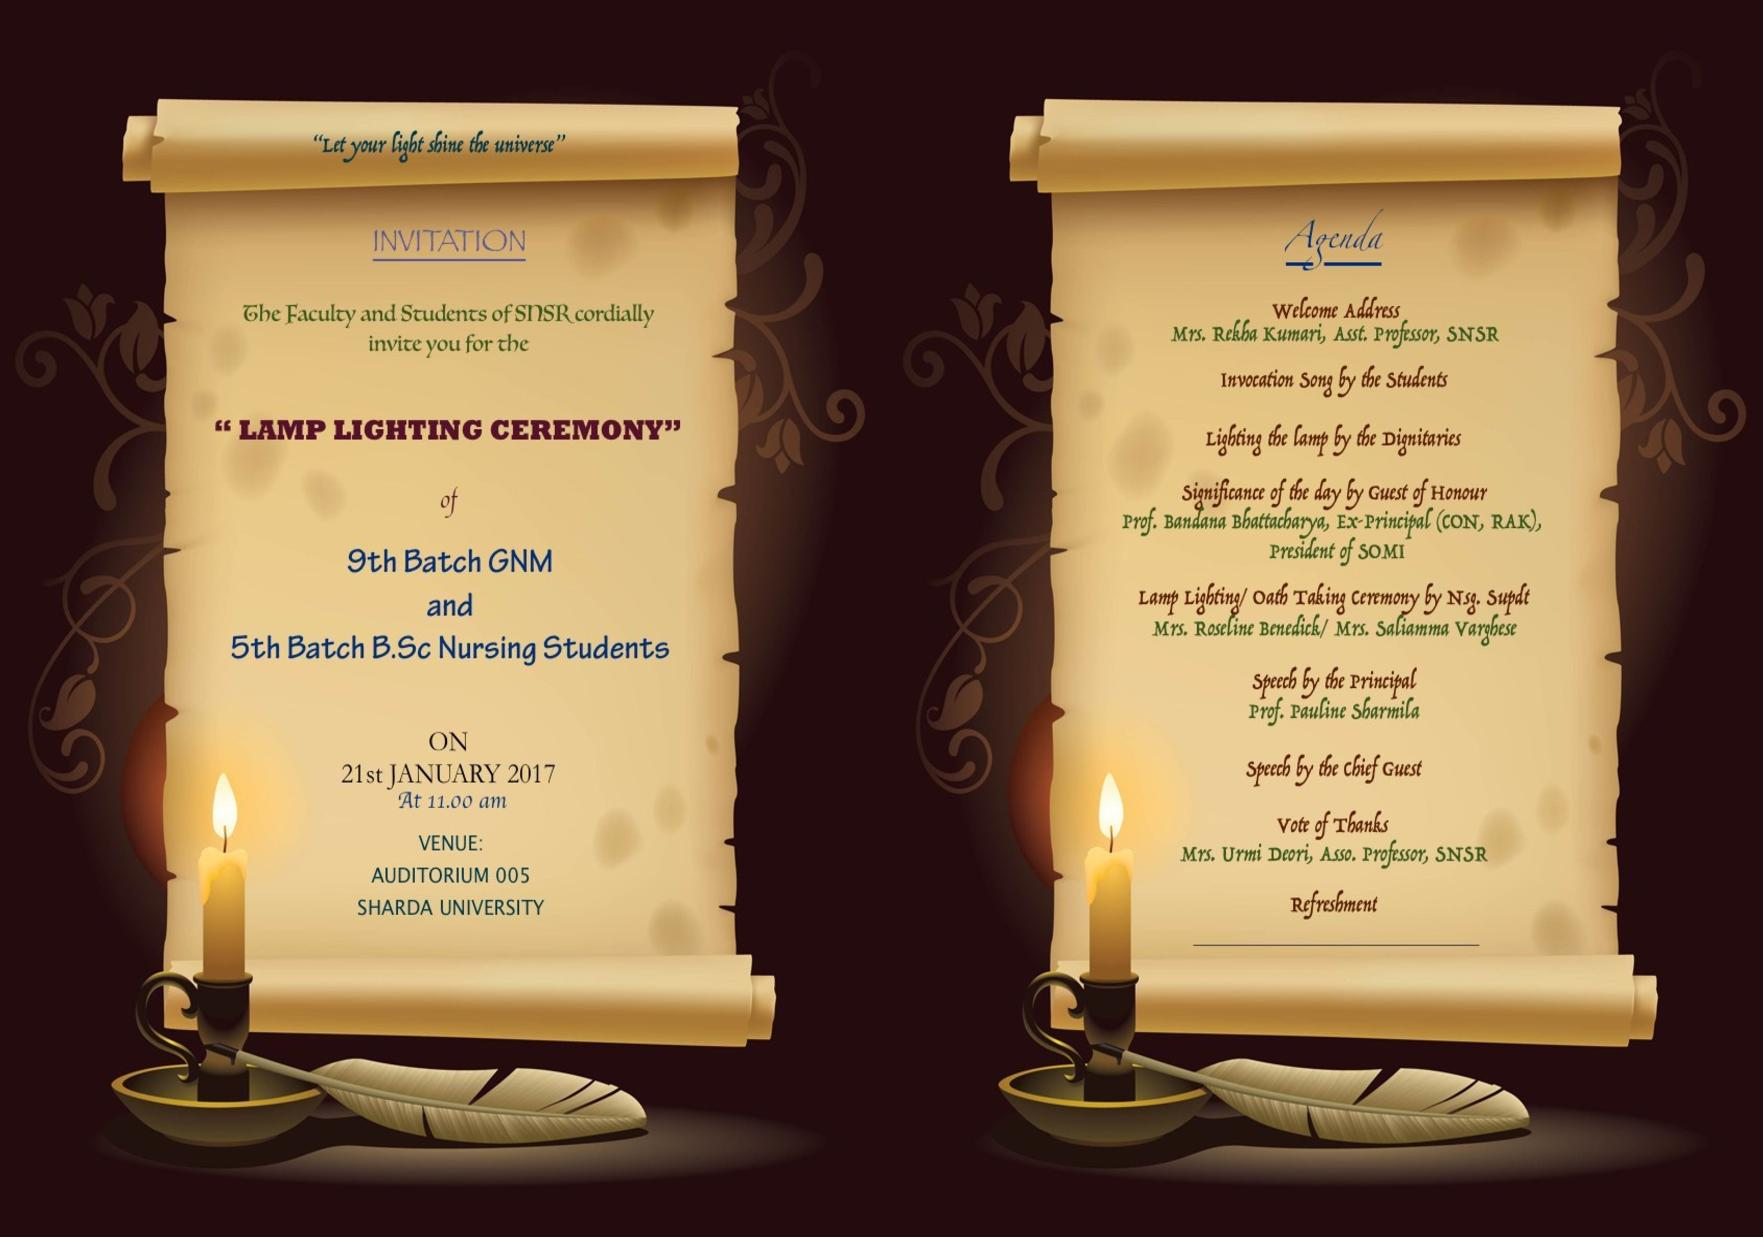 agenda l& lighting-page-001 & agenda lamp lighting-page-001 | Sharda University Event Calander